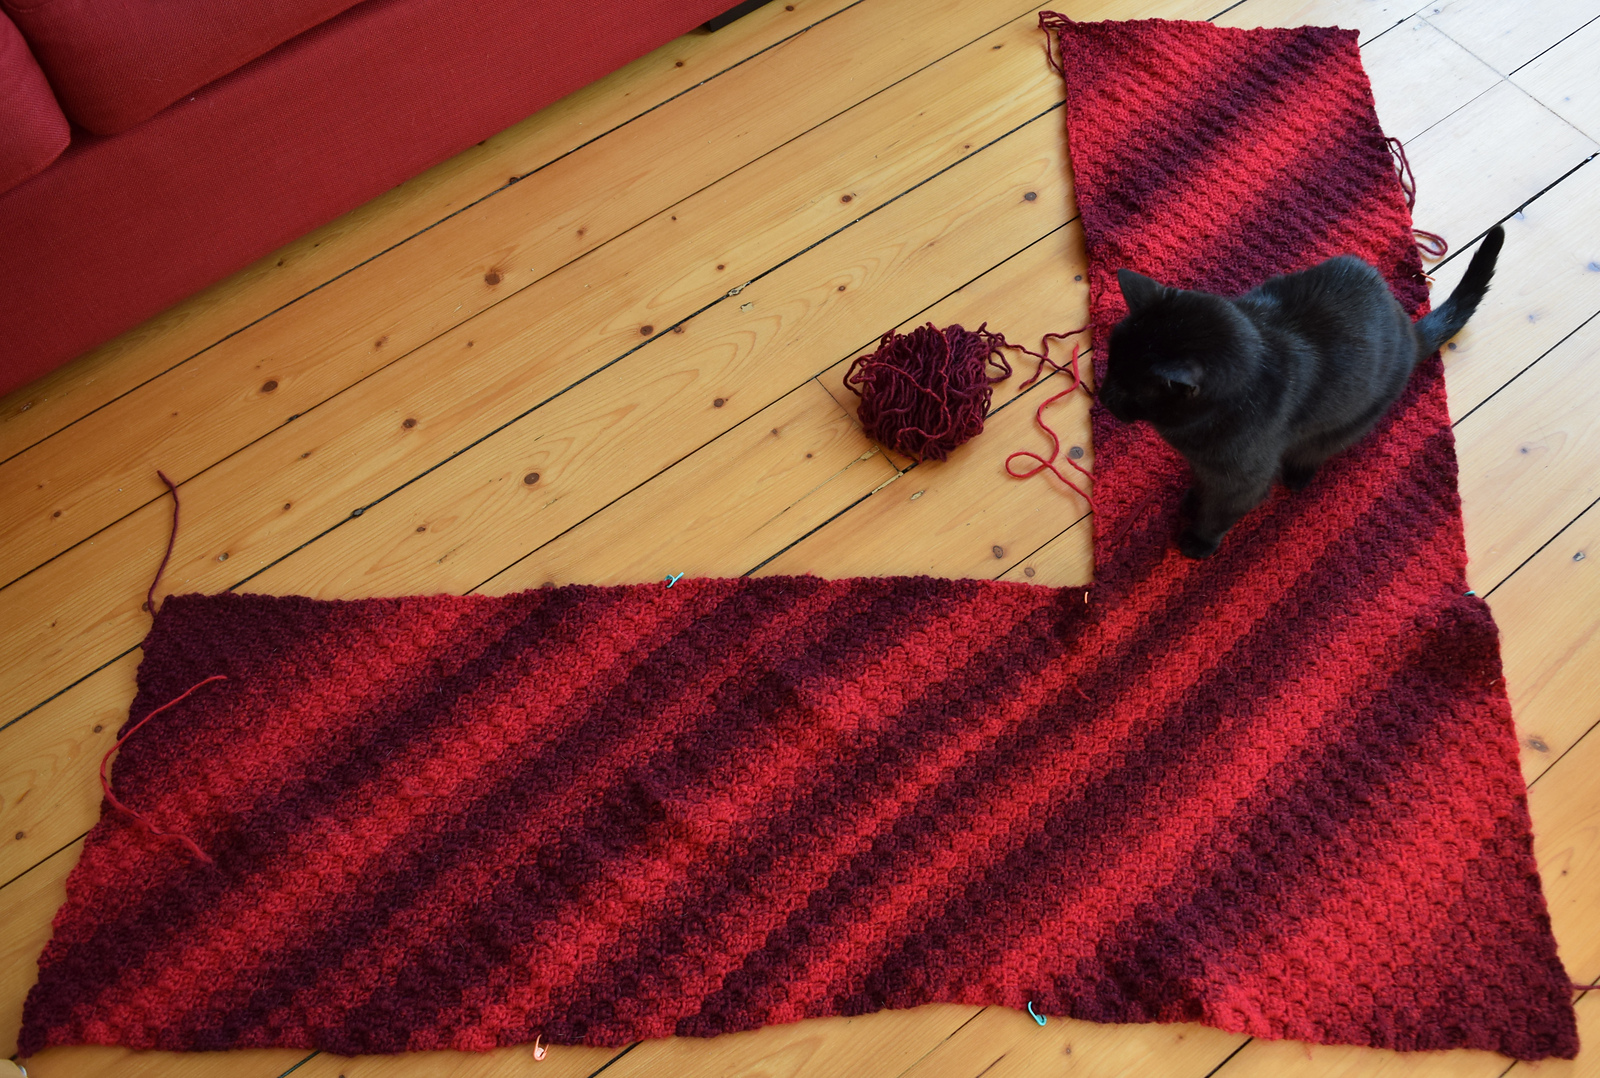 V-shaped shawl in ombre red yarn with a black cat sitting on it